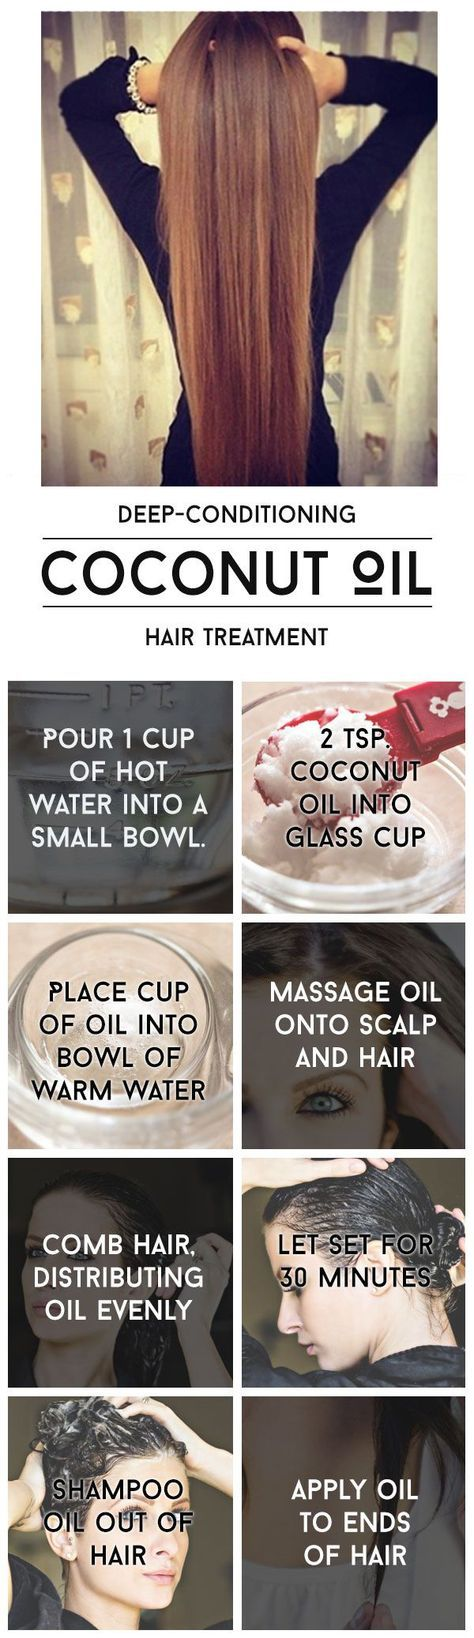 Do you know what's really in your products? Try this DIY hair recipe because your hair deserves it http://www.addisonrenee.com